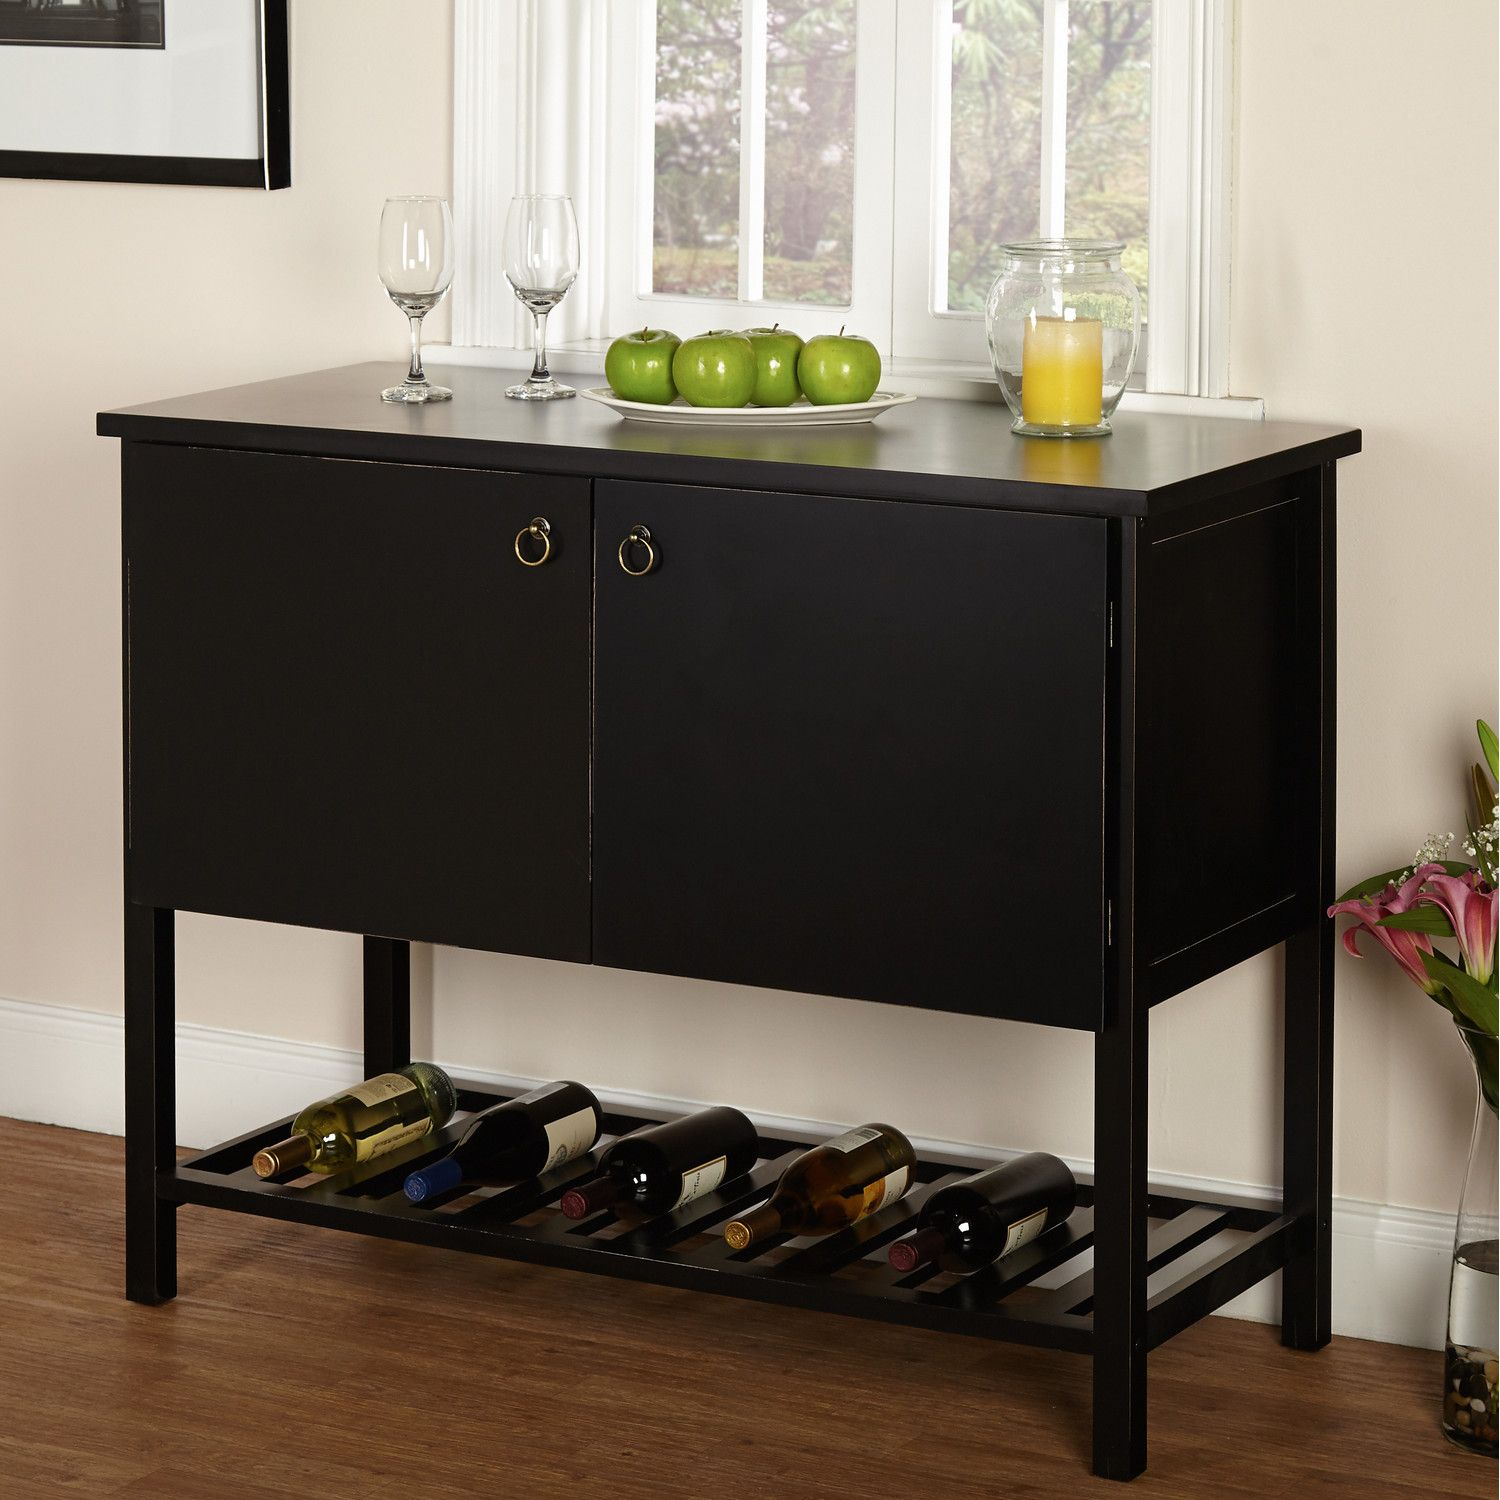 Tms Harvey Buffet | Ljc | Buffet, Wine Shelves, Sideboard Buffet Pertaining To Simple Living Montego Black Wooden Buffets (View 29 of 30)